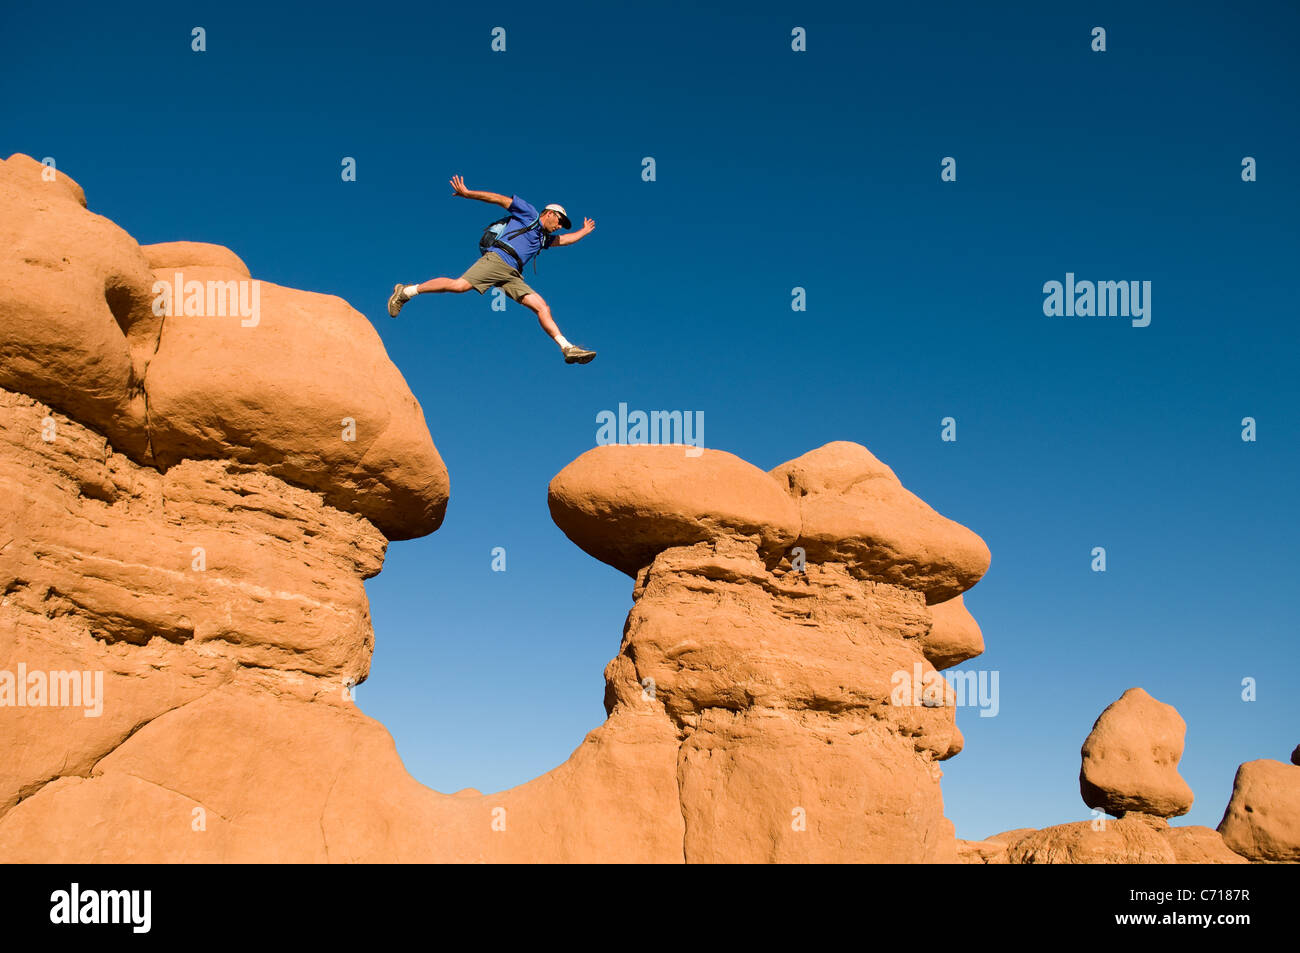 Man jumping between rock spires, Goblin Valley State Park, Hanksville, Utah. - Stock Image